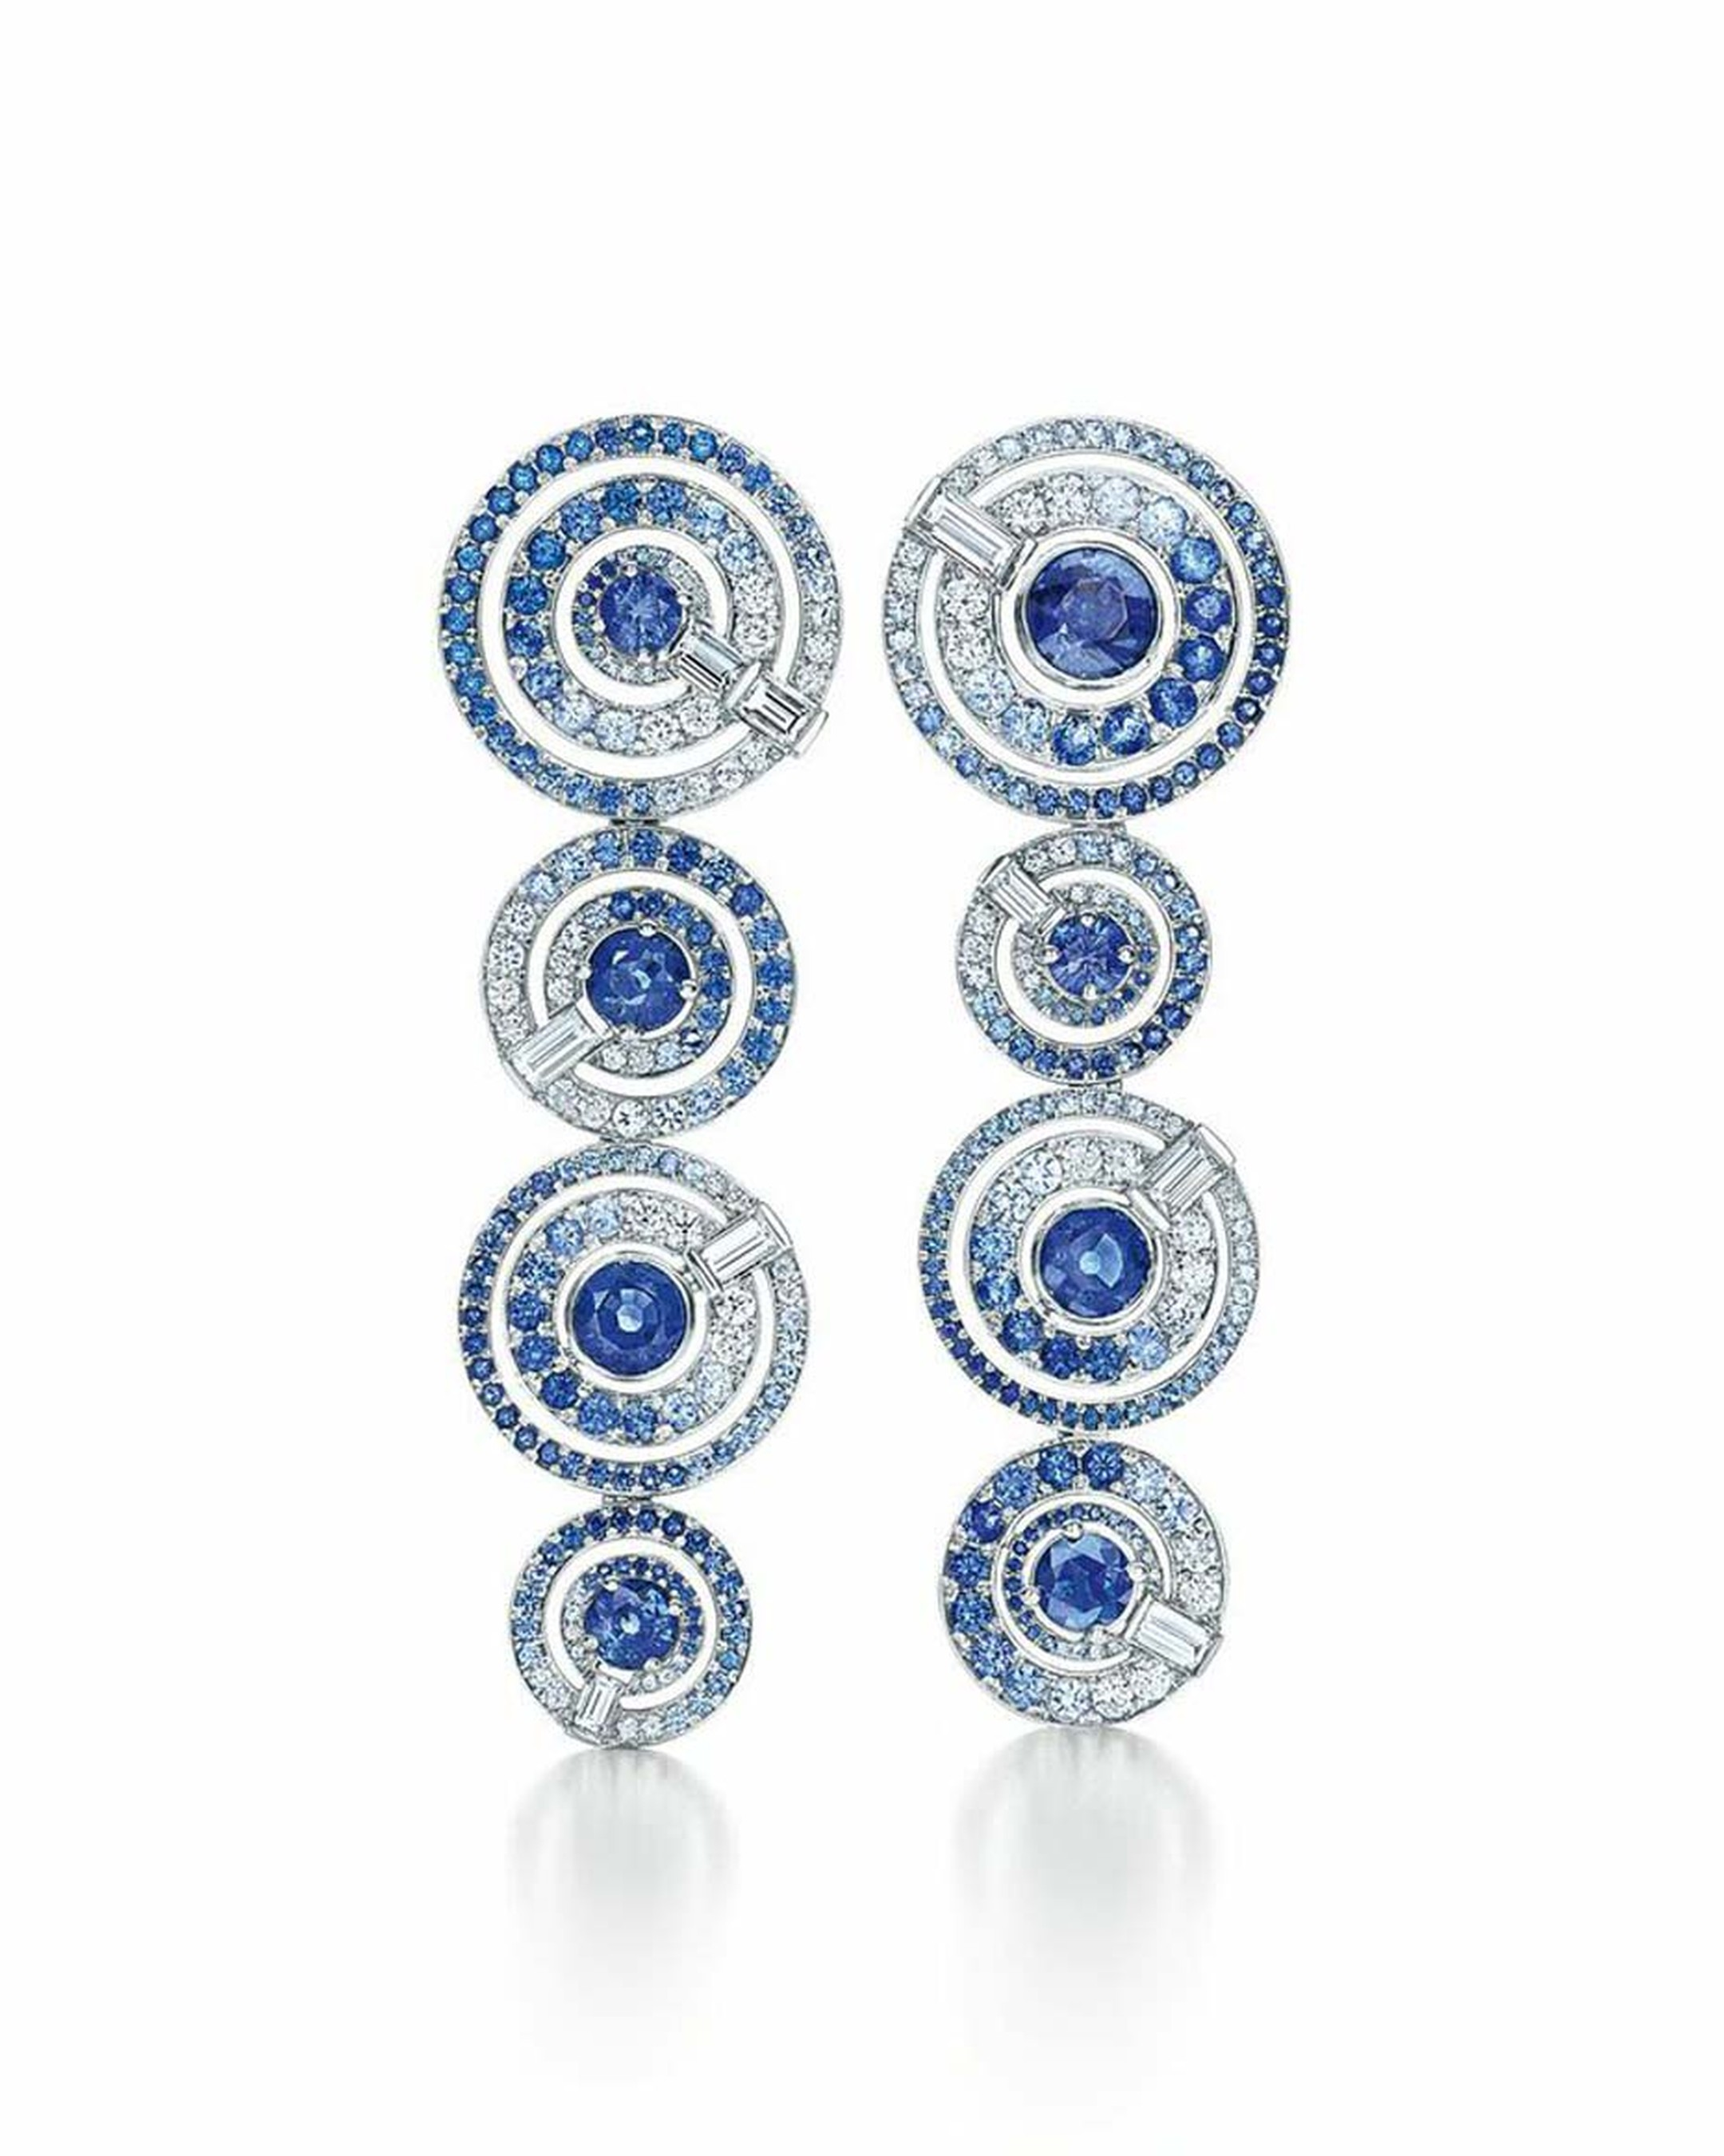 Tiffany earrings with sapphires and round diamonds in white gold from the 2015 Blue Book collection.